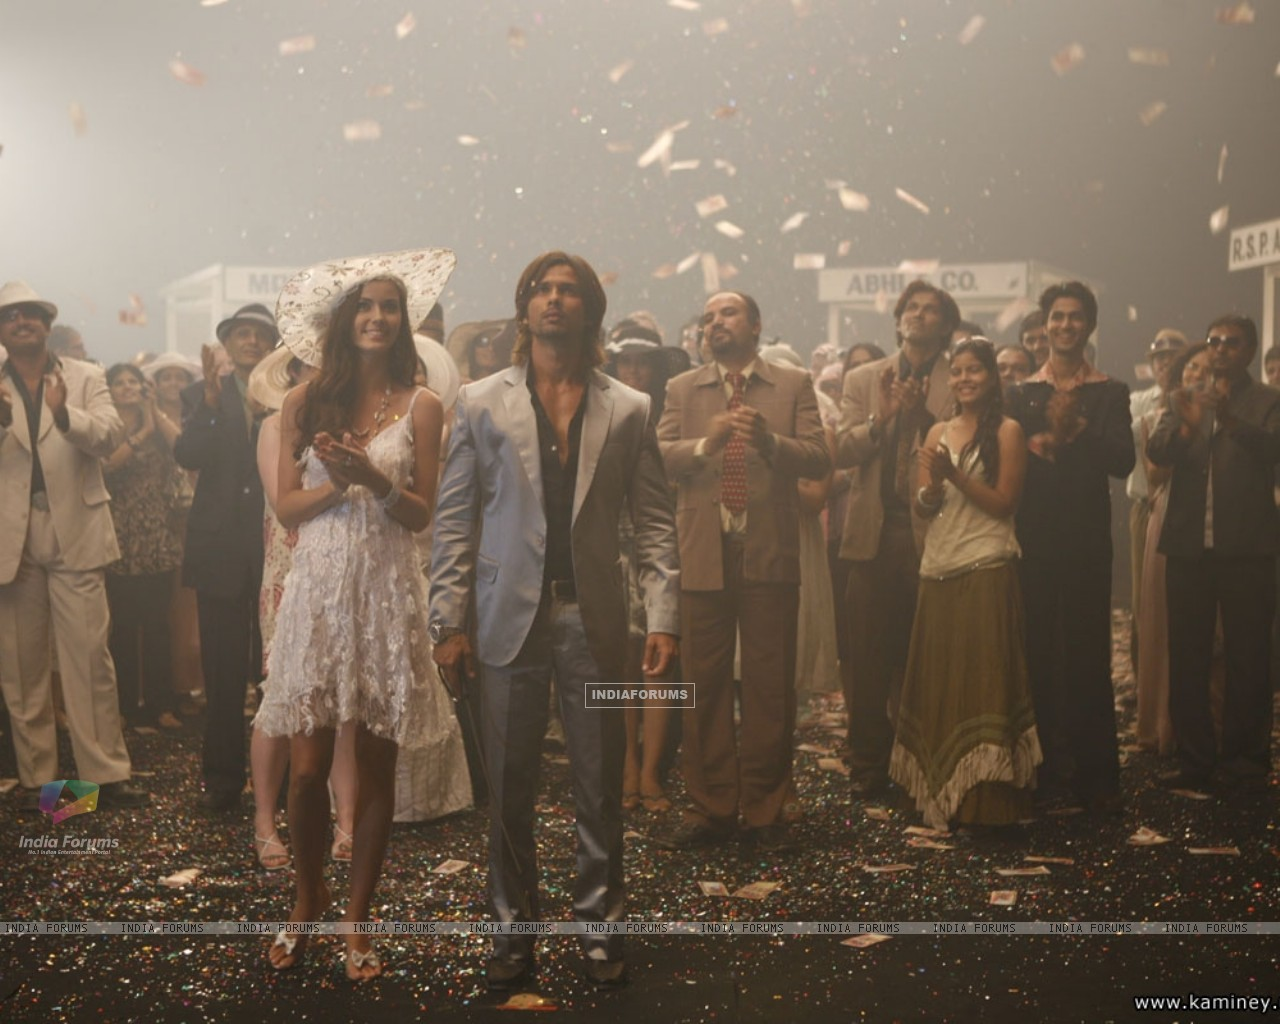 Shahid and Priyanka in Kaminey movie (20352) size:1280x1024